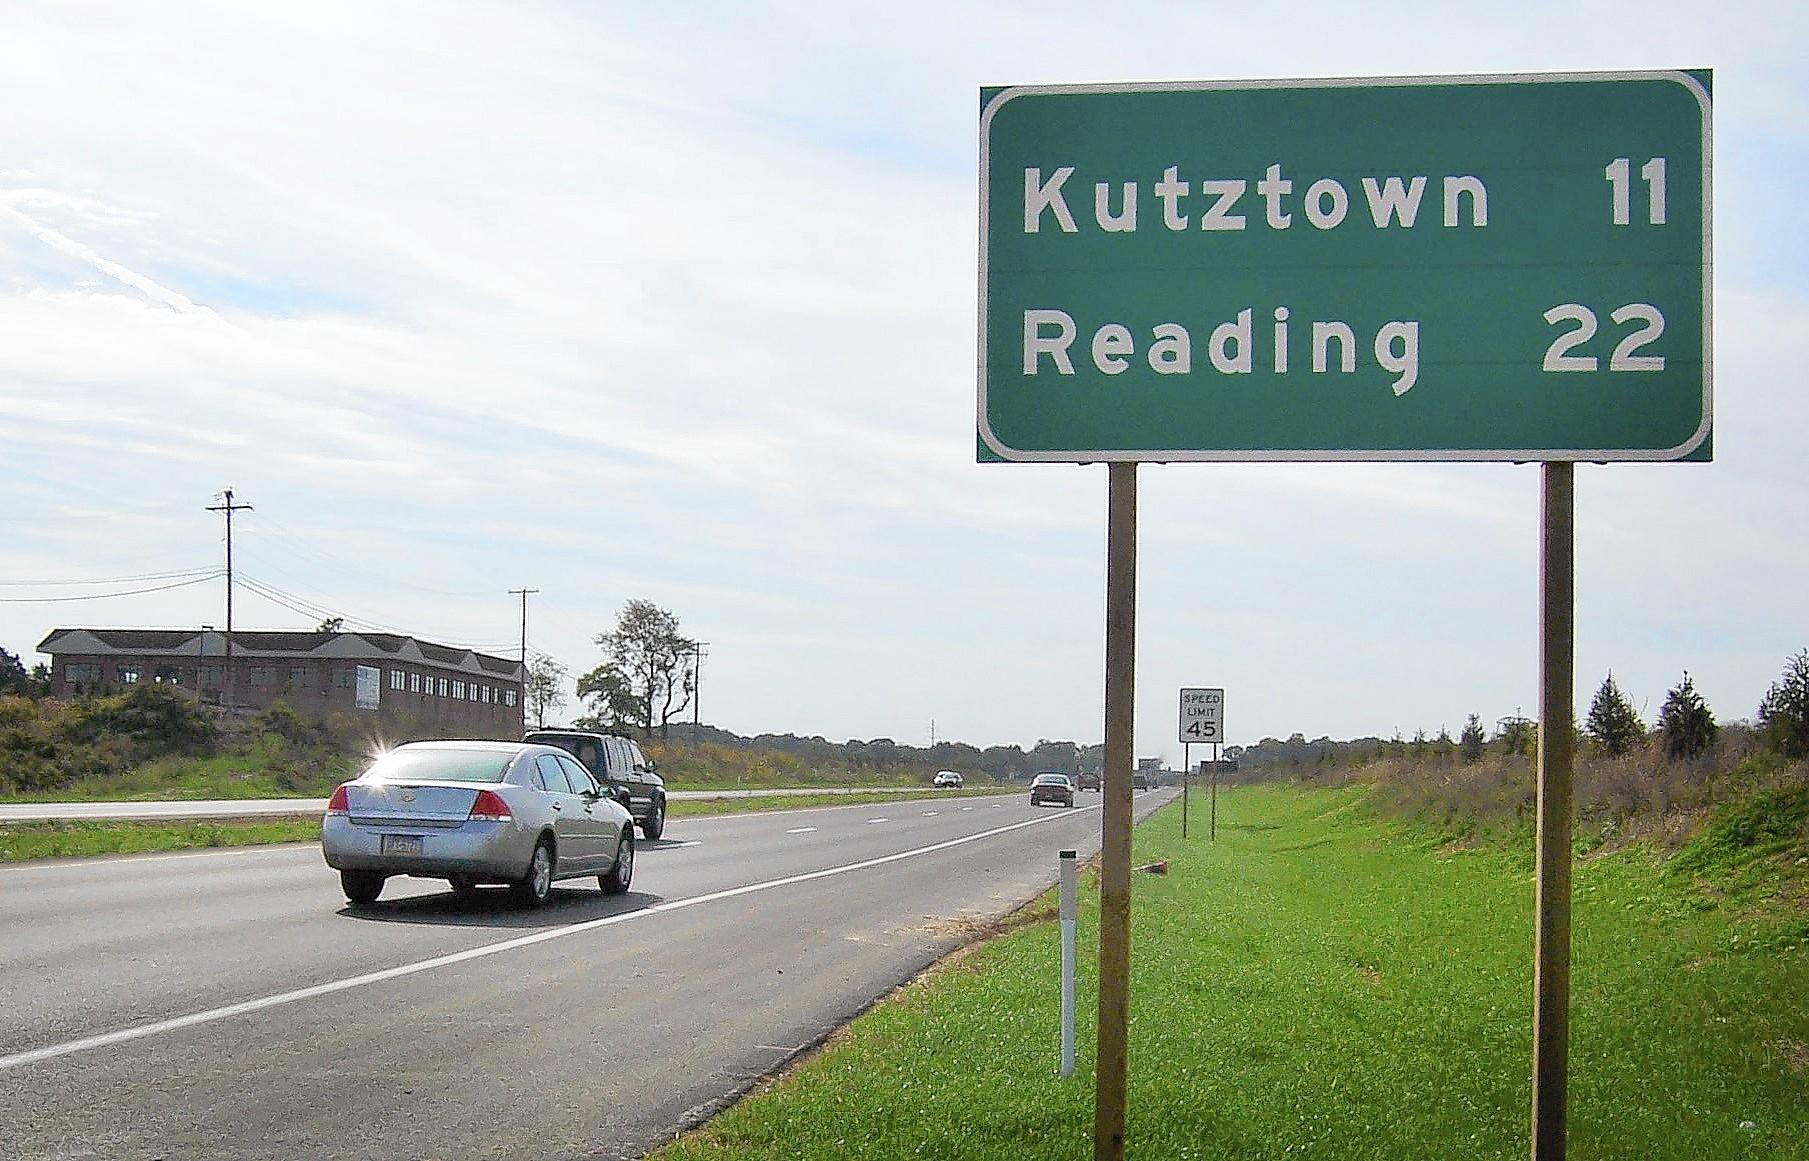 Route 222 in western Lehigh County has four lanes but some sections of the road that leads to Kutztown and Reading are only two lanes.